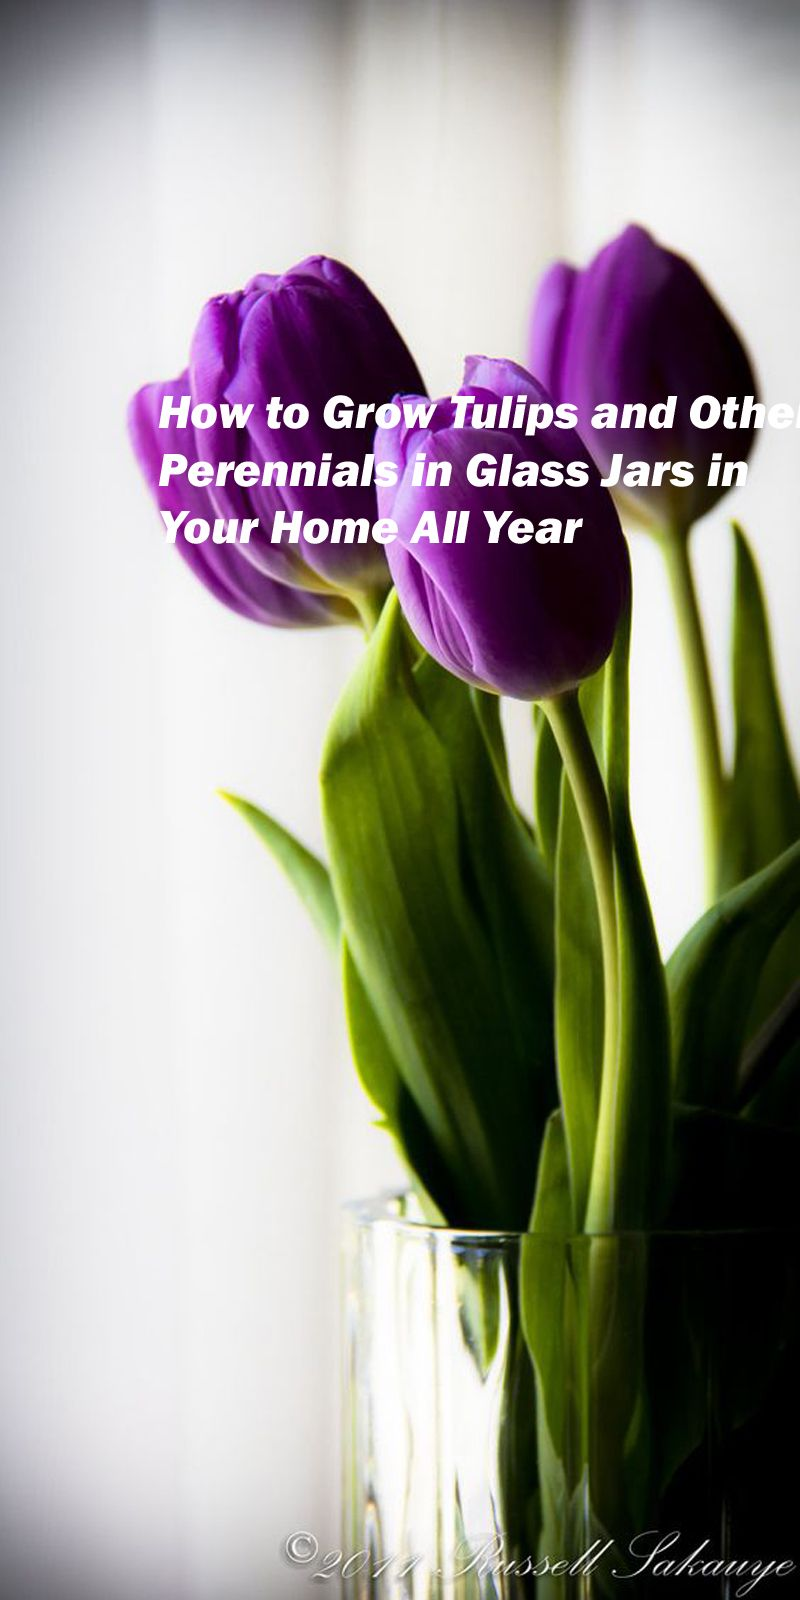 grow or force tulips and other perennials in glass jars all year around in your home. Glass vases or canning gars are great to use when growing tulips in your home garden.#homegarden #beautifulhomegarden #vegetablegardenplanner #vegetablegardenideas #vegetablegardendesign #vegetablegardeningbooks #vegetablegardenar #vegetablegardenatschool #vegetablegardenpictures #vegetablegardenimage #vegetablegardeninfrench #gardenvegetableplant#gardening